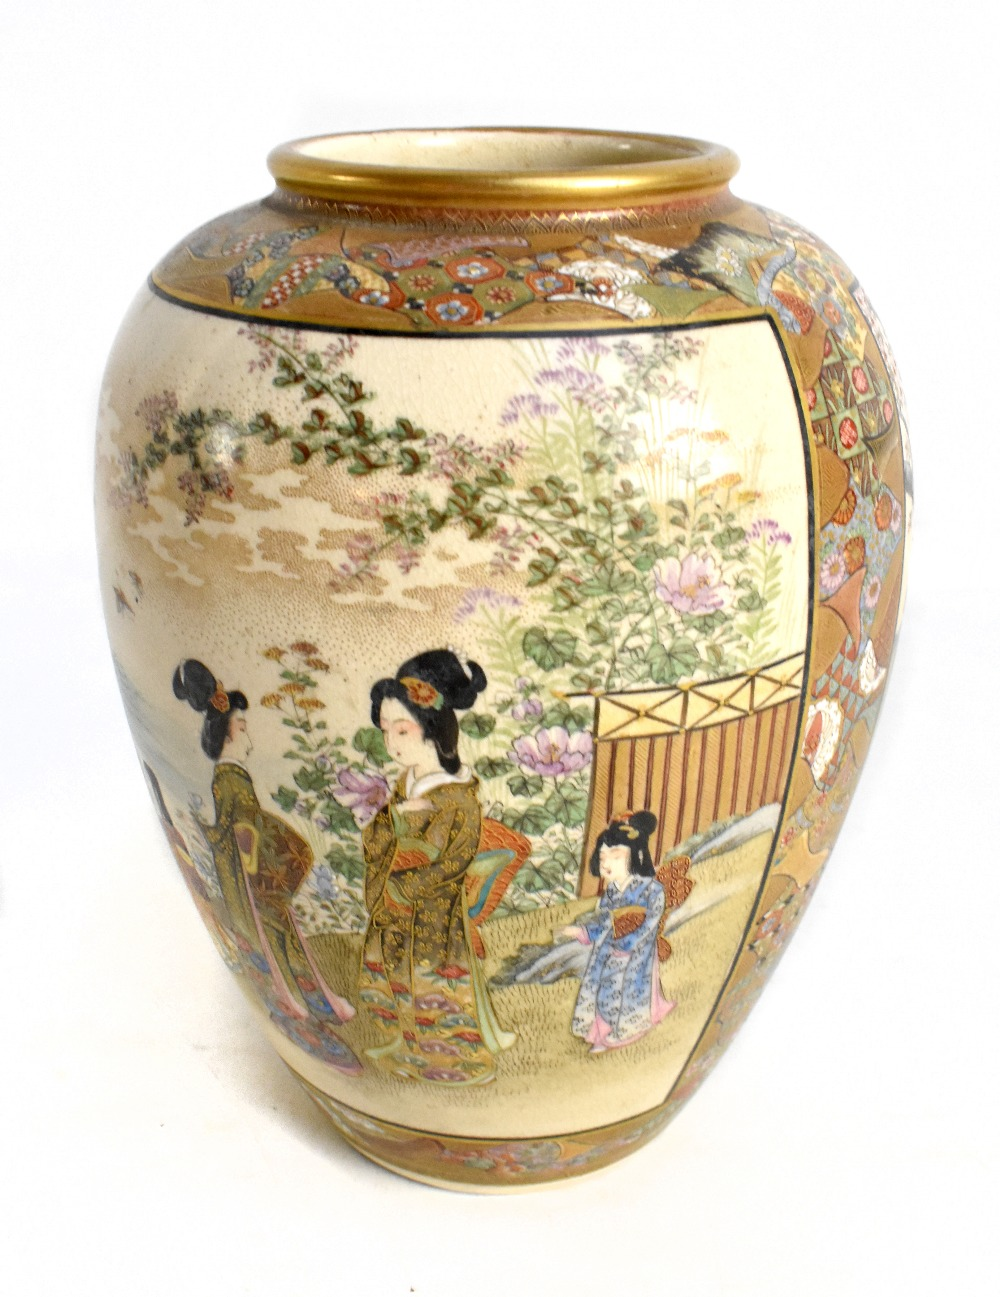 A Japanese Satsuma vase of globular form painted with geishas inside floral panels, signed to